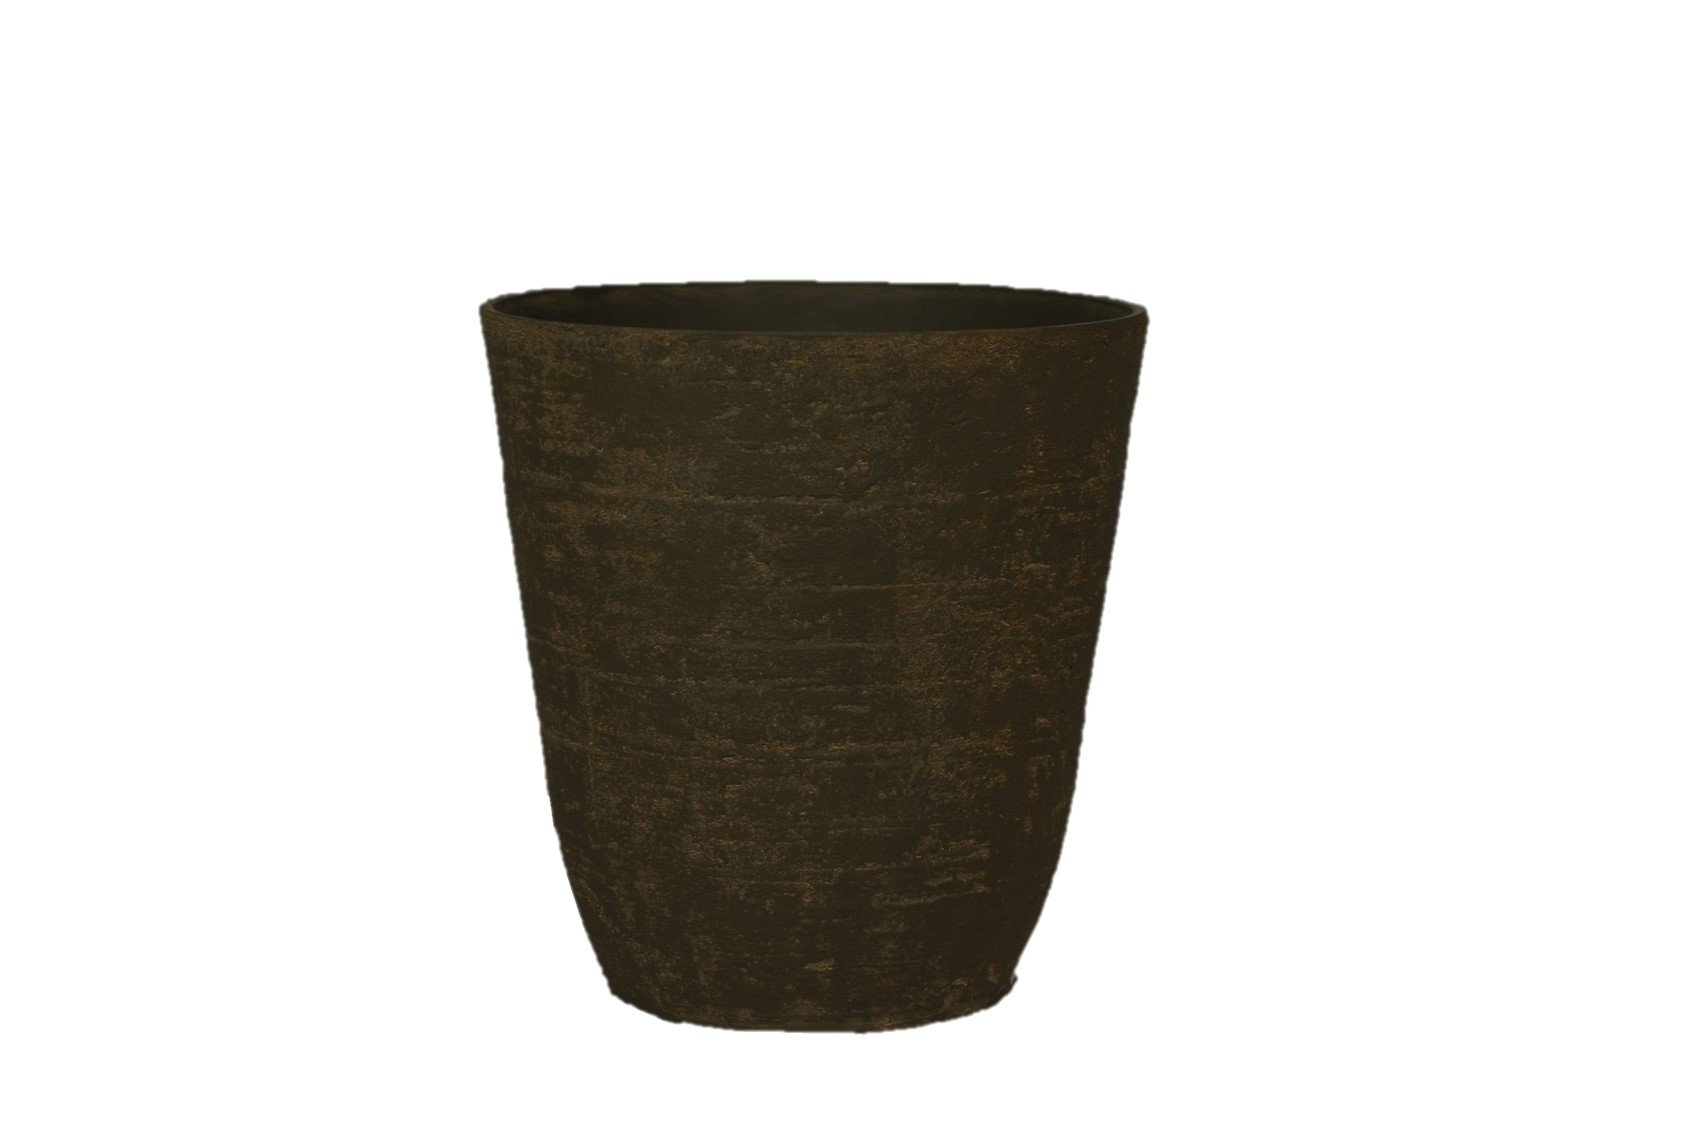 Stone Light Antique AT Series Cast Stone Planter, 20 by 20.5'', Sandal Wood